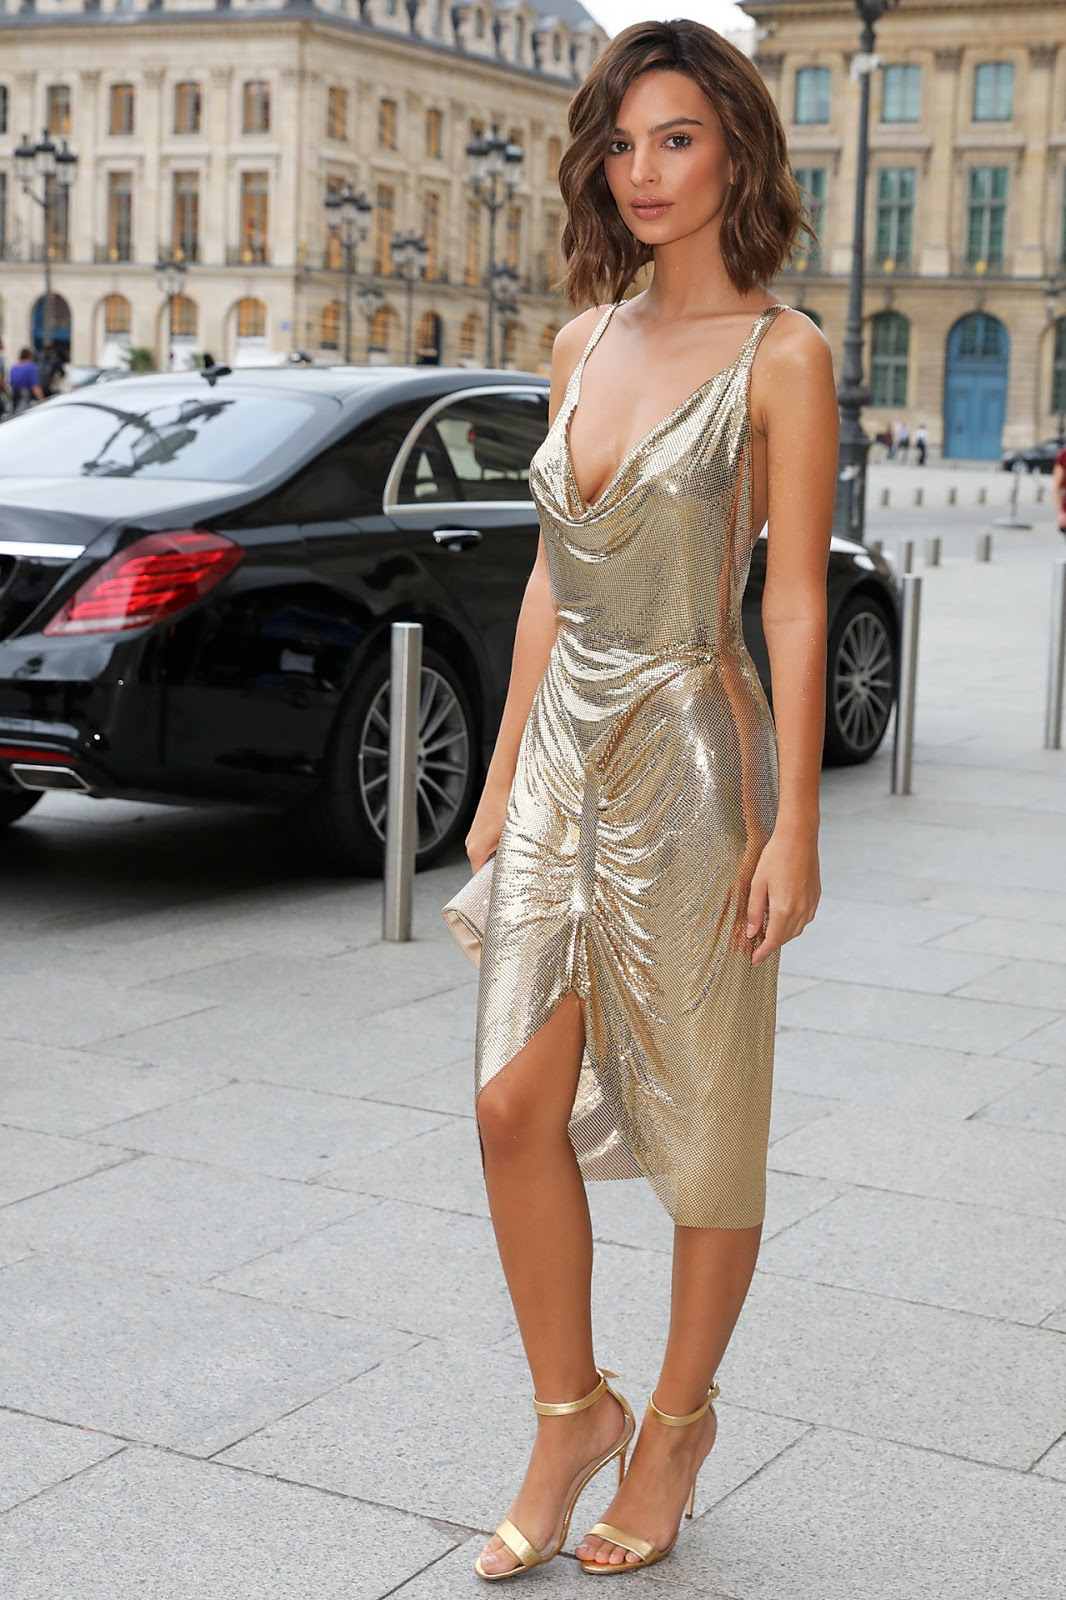 Emily Ratajkowski goes braless in a slinky shimmering cocktail dress as she continues to display her newly-chopped locks during Paris Fashion Week